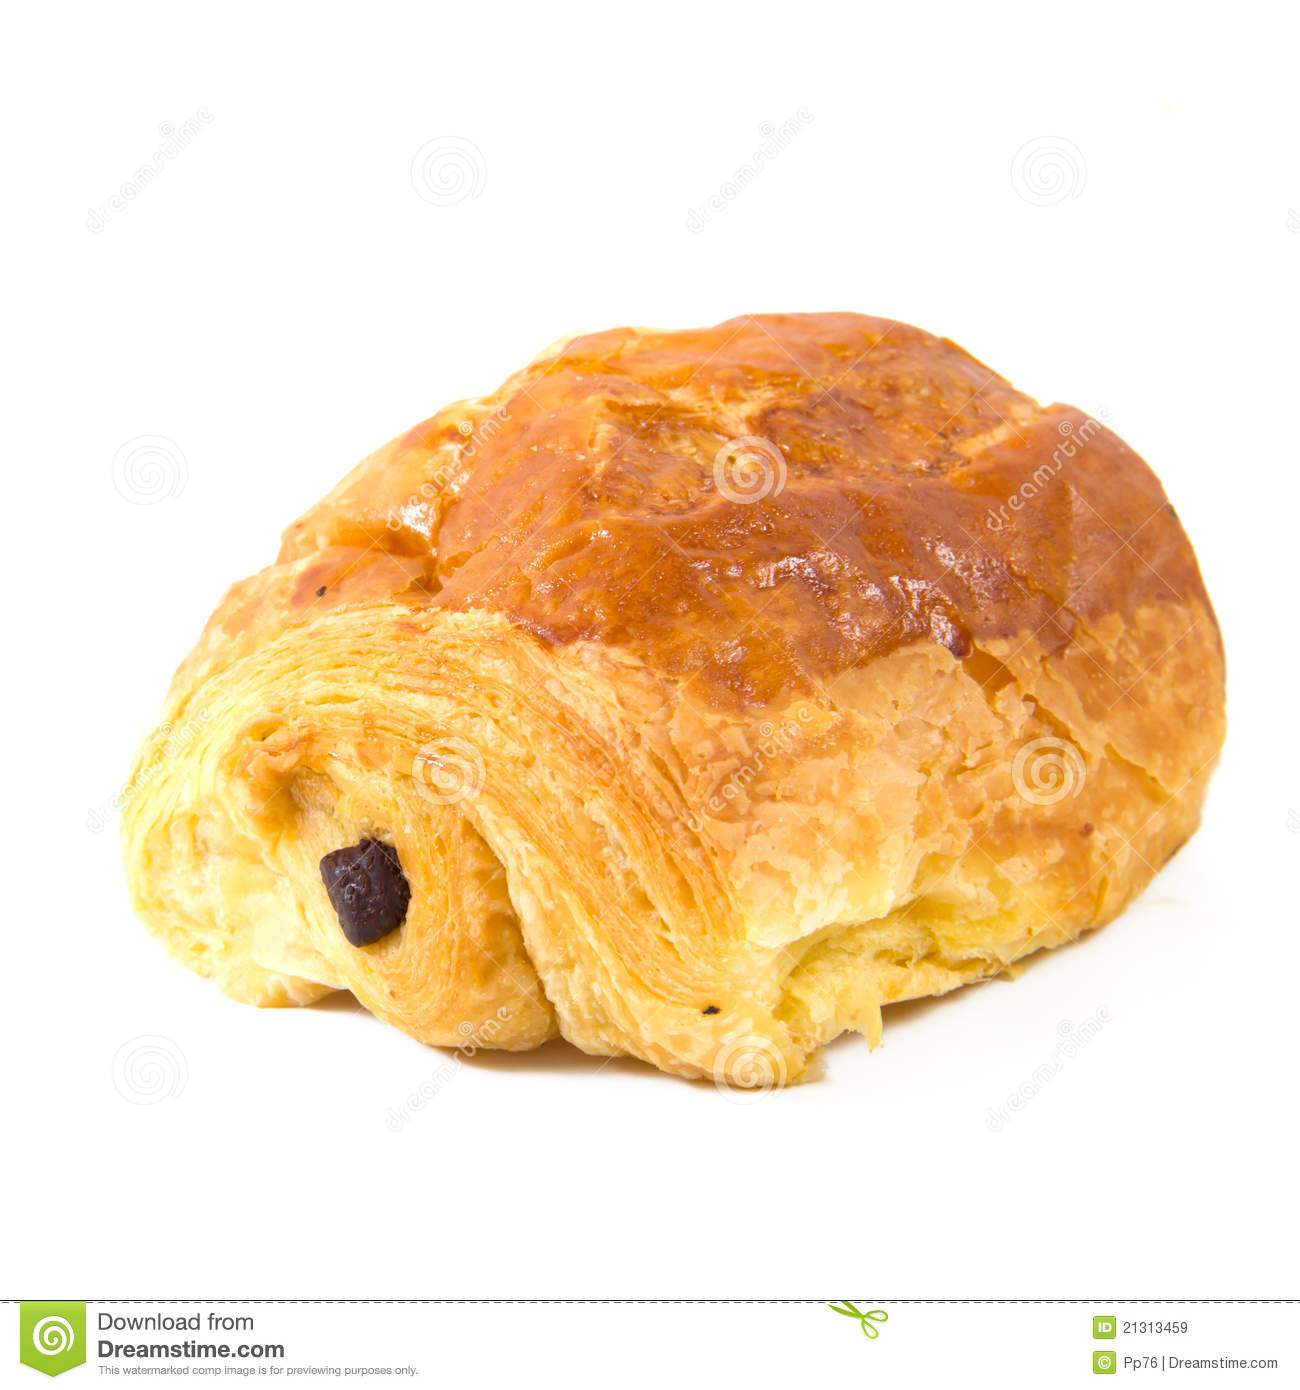 Pain au chocolat clipart image transparent library Pain au chocolat clipart 6 » Clipart Portal image transparent library